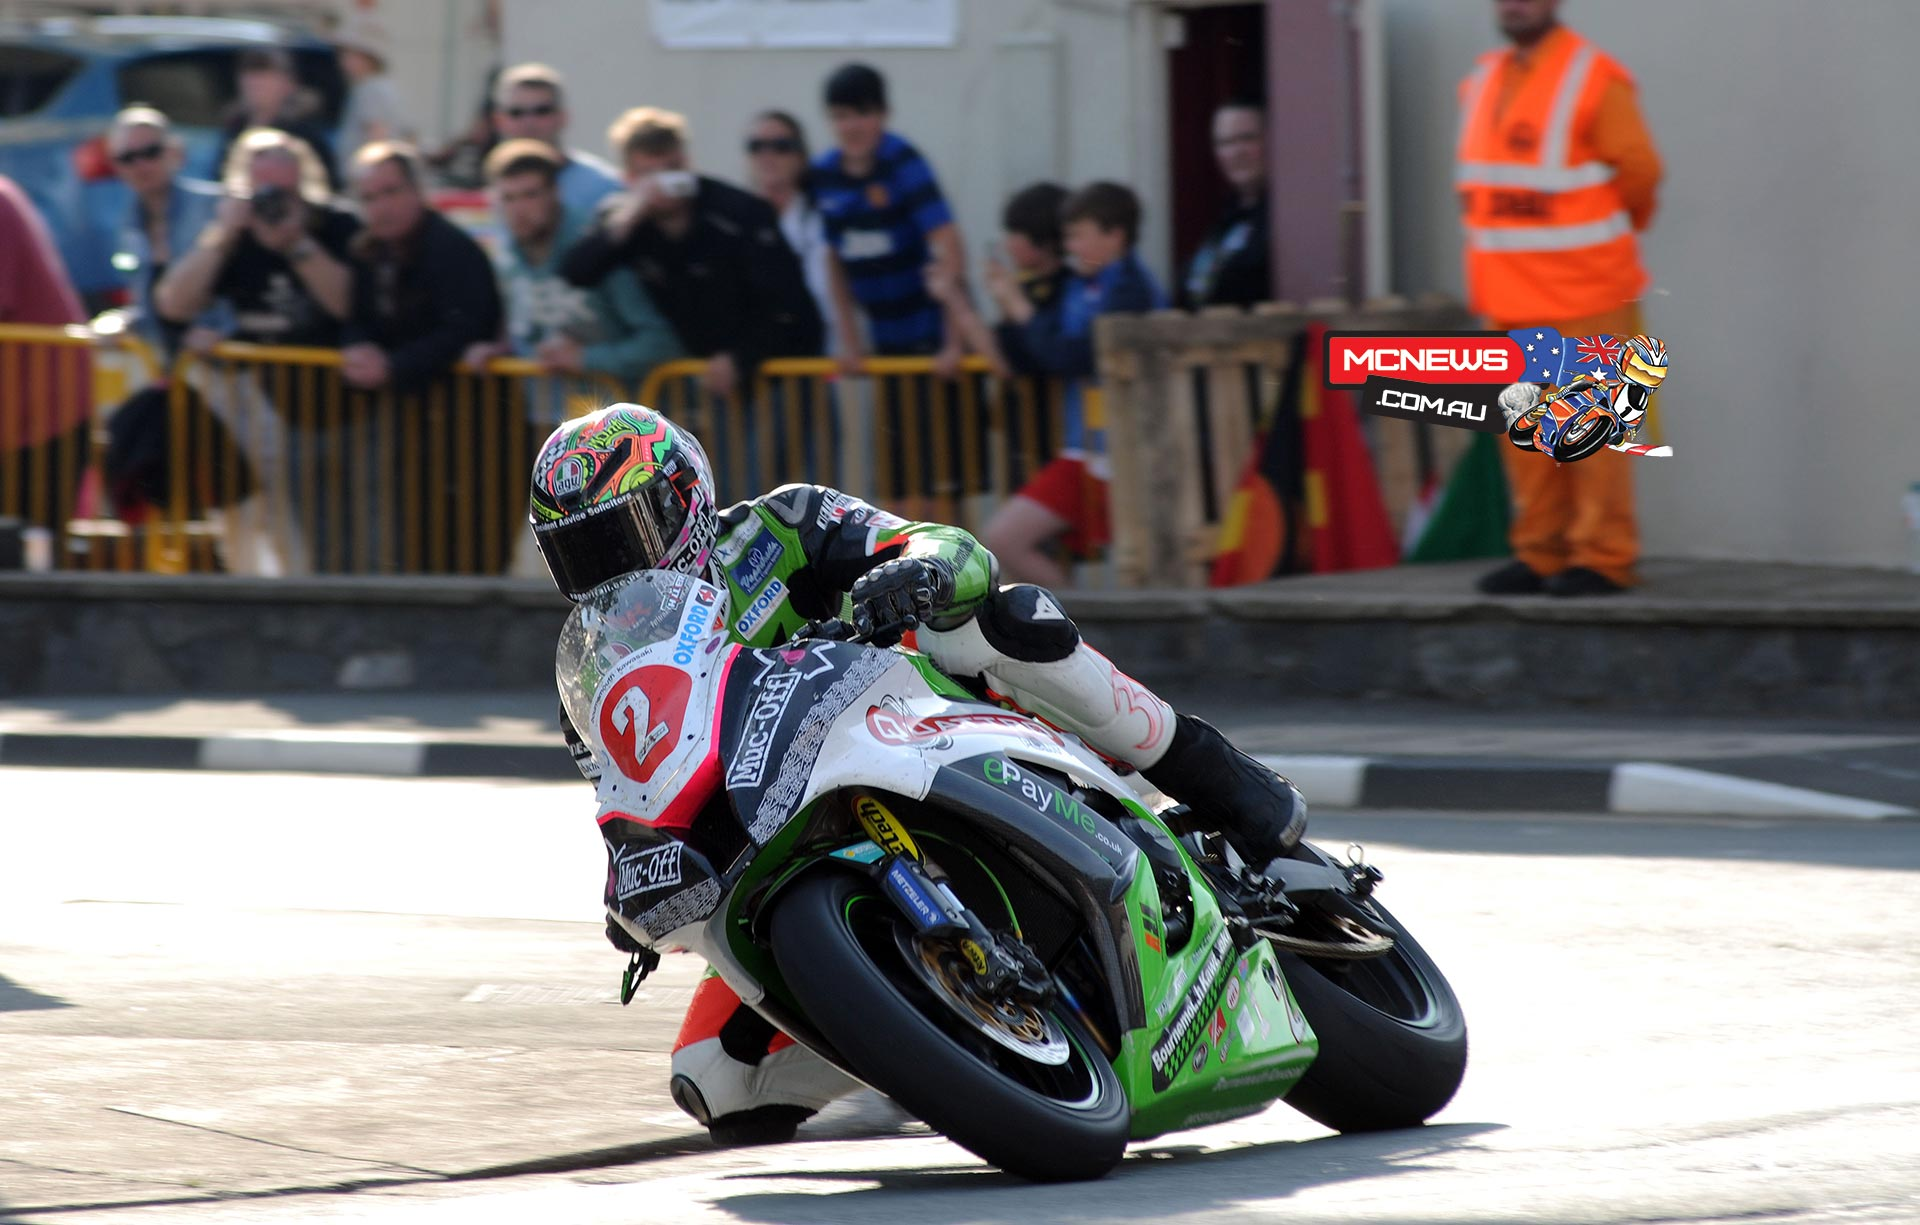 Hillier's opening lap kept him at the top of the Superstock leaderboard for the entire night and he was followed by Michael Dunlop (125.840), Rutter (125.325), Anstey (125.086), McGuinness (124.529) and Kneen (124.111).